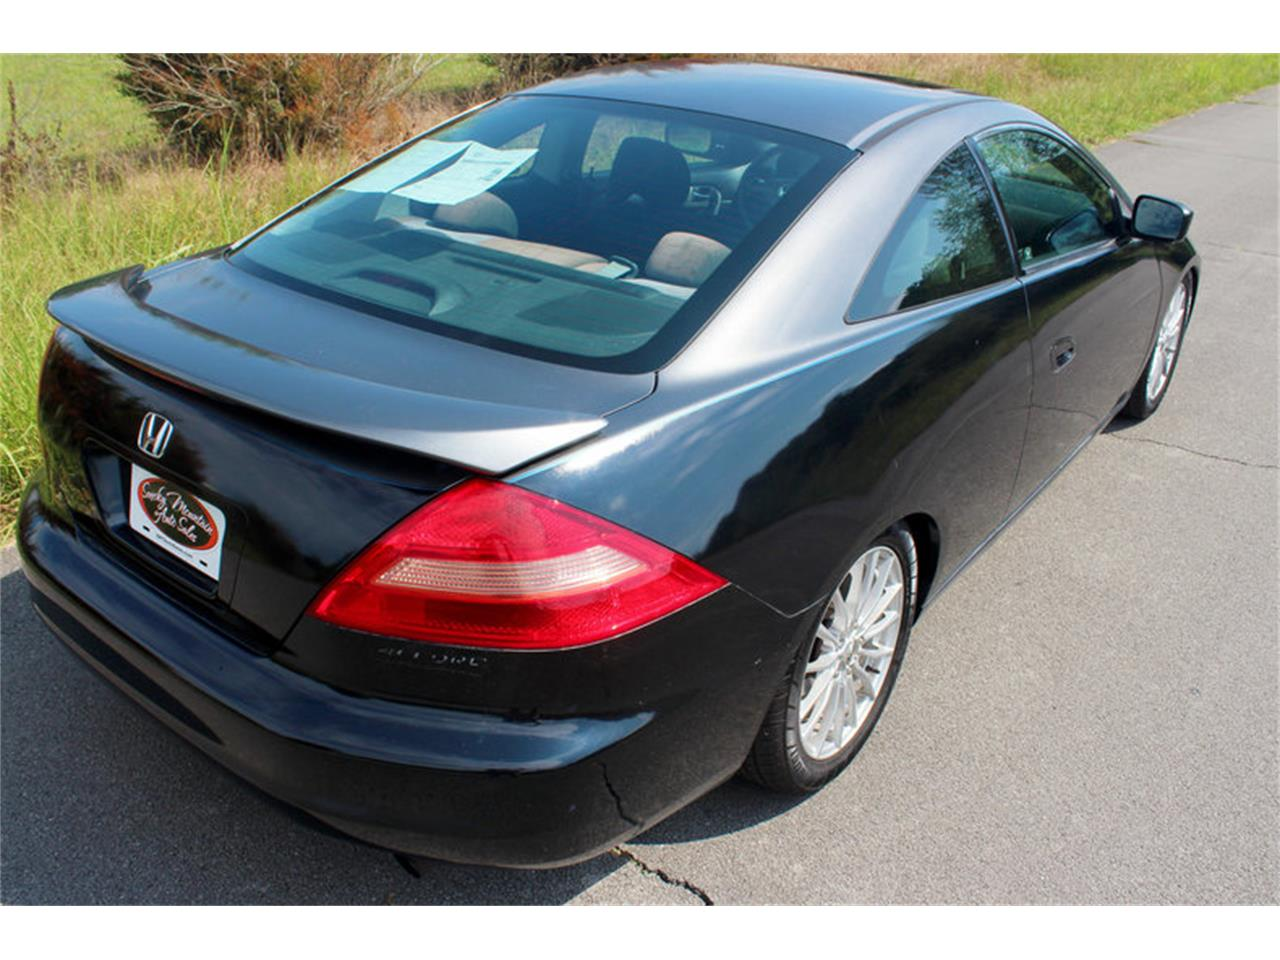 Large Picture of '04 Honda Accord - $5,995.00 Offered by Smoky Mountain Traders - OH0M